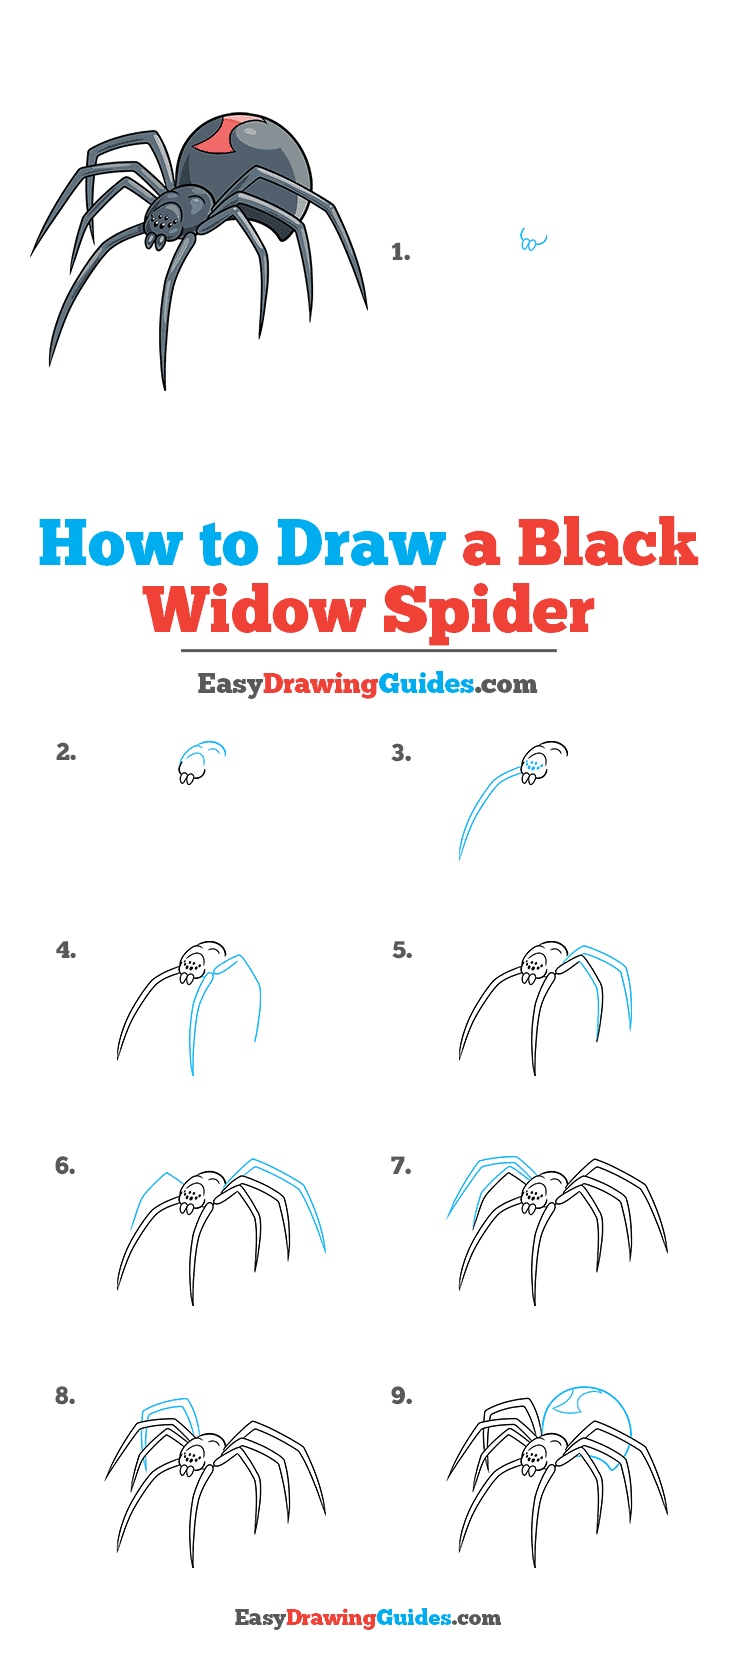 How to Draw a Black Widow Spider Step by Step Tutorial Image